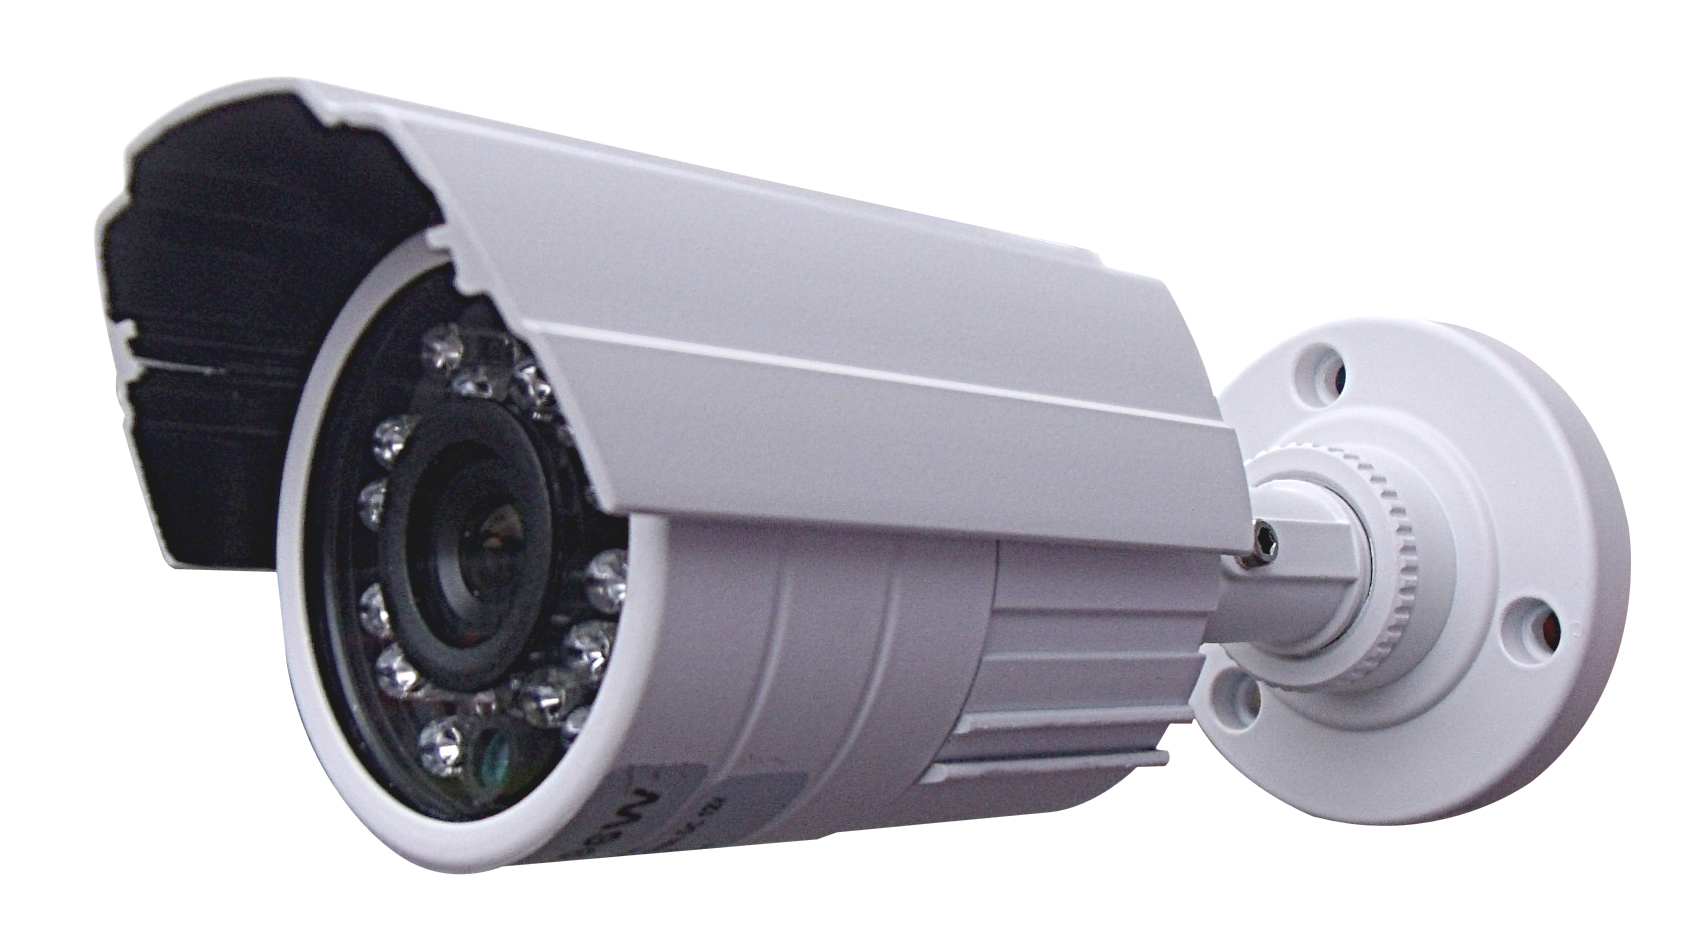 Triax 700TVL 960H Fixed Lens Bullet Camera 15mtr IR (White)